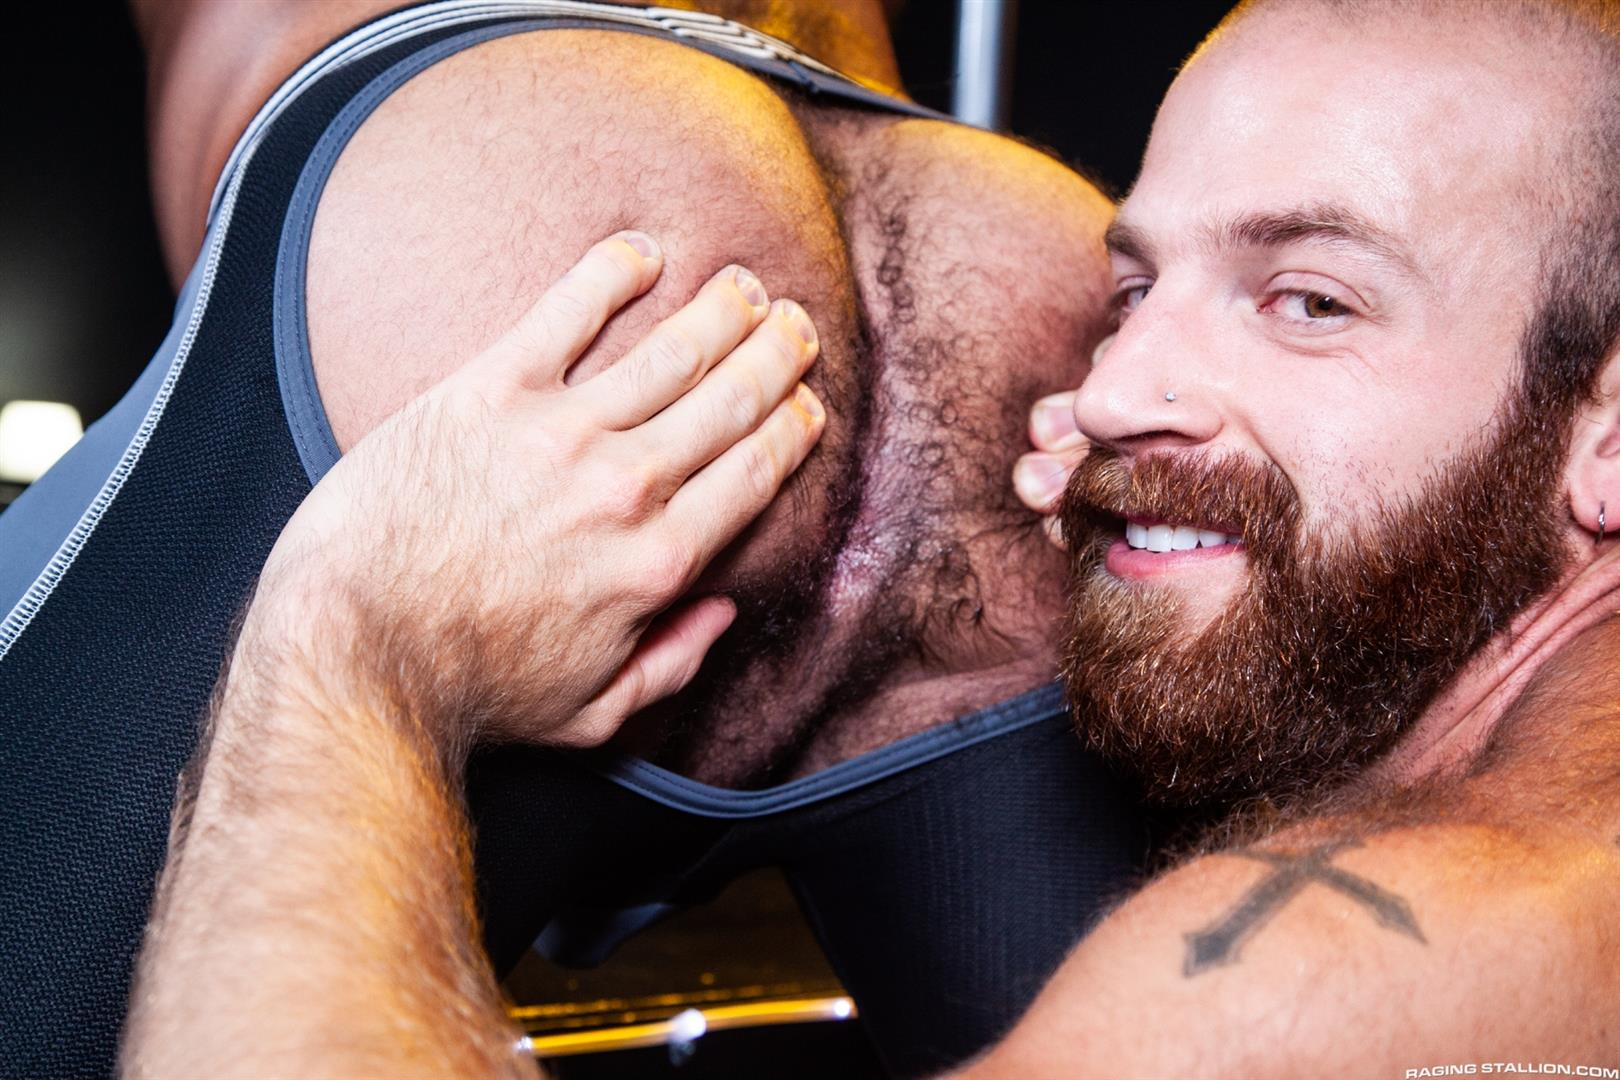 Raging-Stallion-Drake-Masters-and-James-Stevens-hairy-guys-cum-facial-11 Hairy Muscle Bear Drake Masters and Otter James Stevens Swap Cum Facials